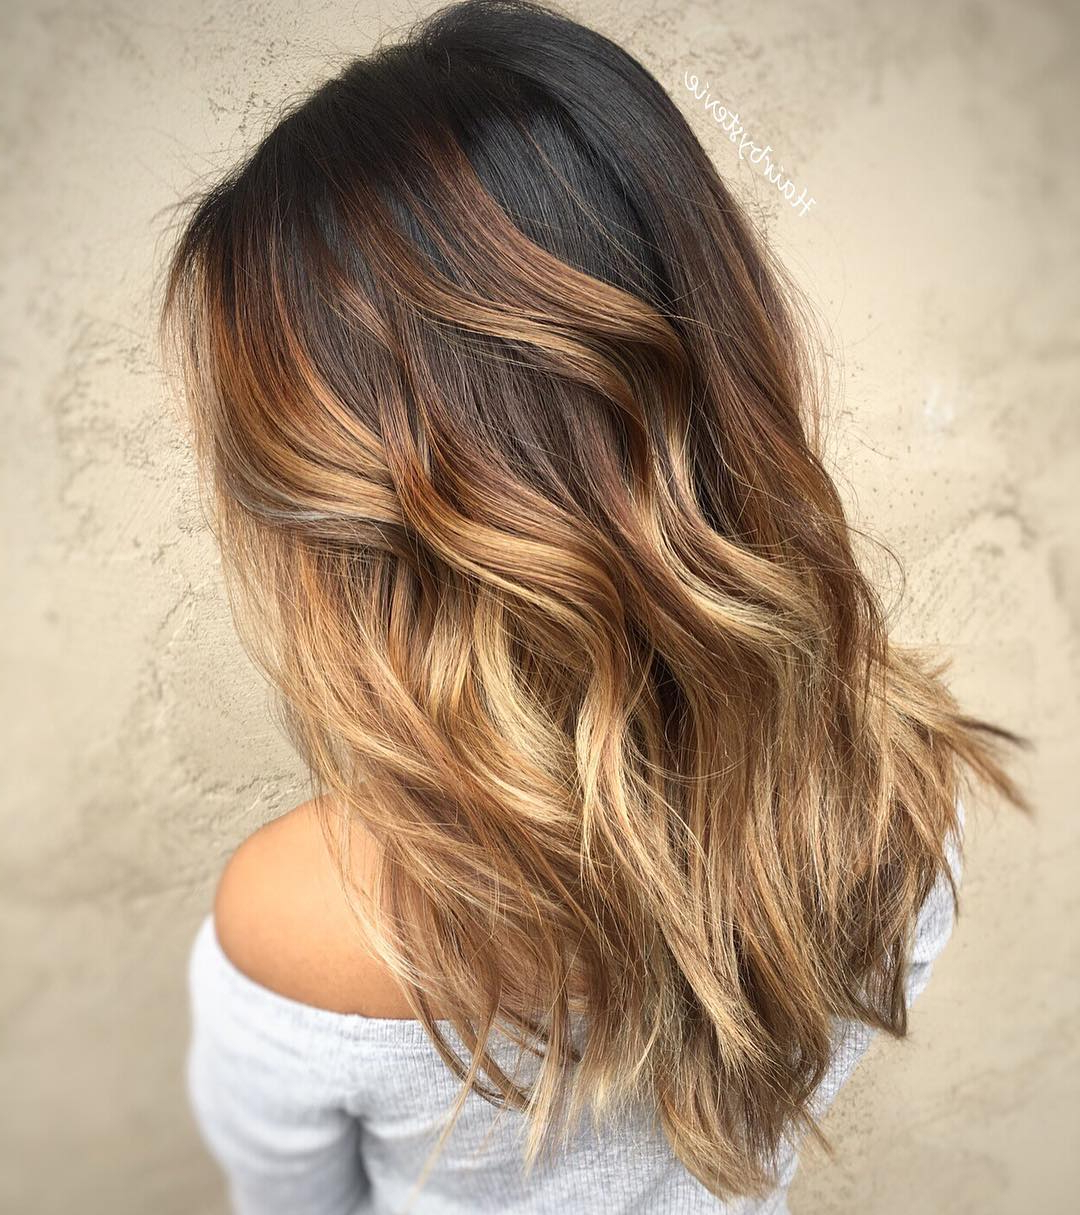 20 Sweet Caramel Balayage Hairstyles For Brunettes And Beyond For Curly Dark Brown Bob Hairstyles With Partial Balayage (View 22 of 25)